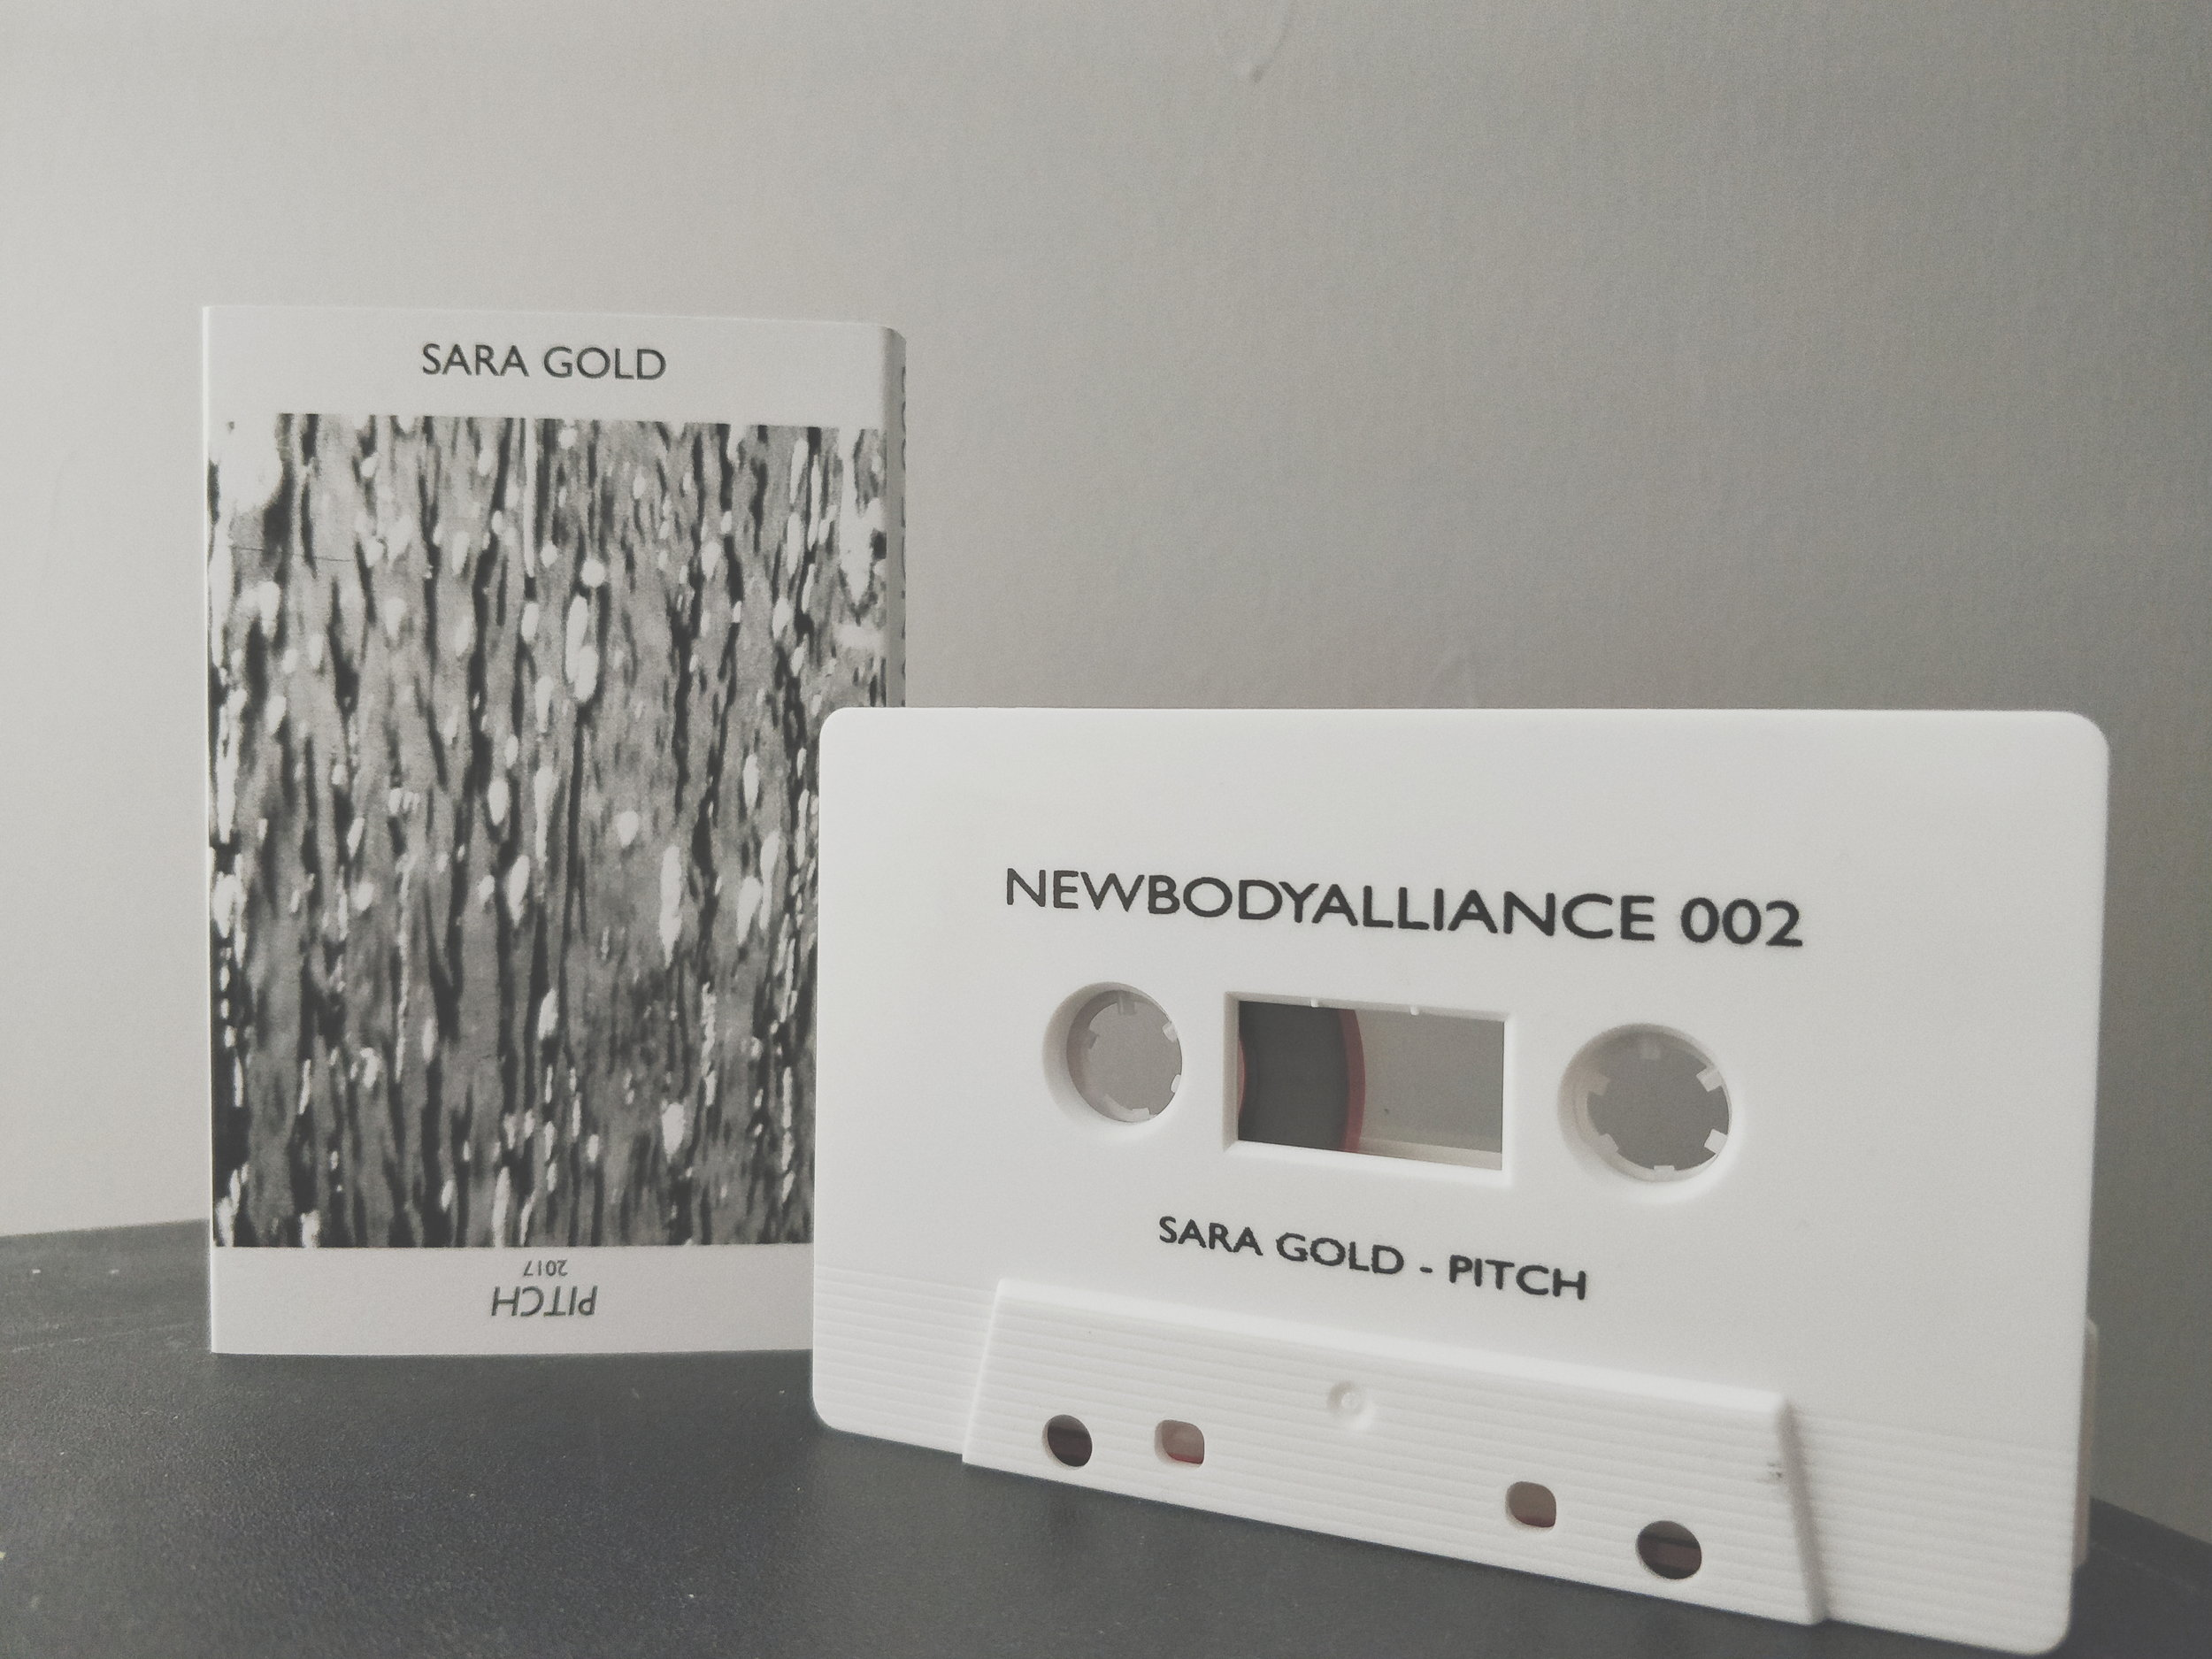 Sara Gold - Pitch (NEWBODYALLIANCE)